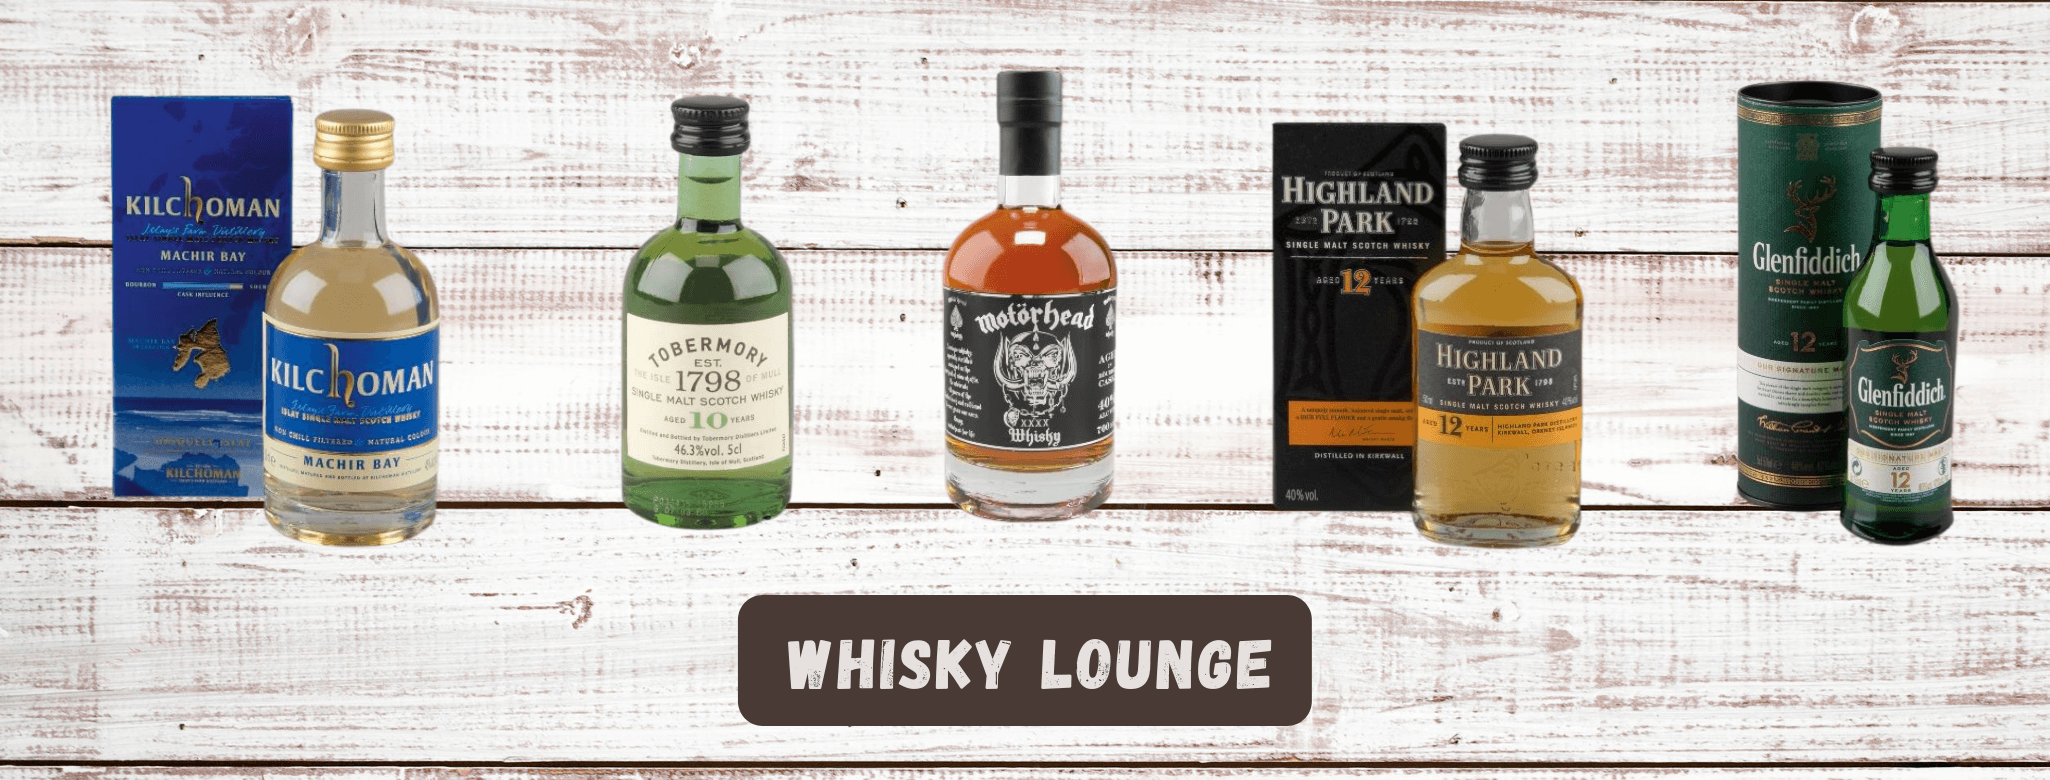 Whisky Lounge